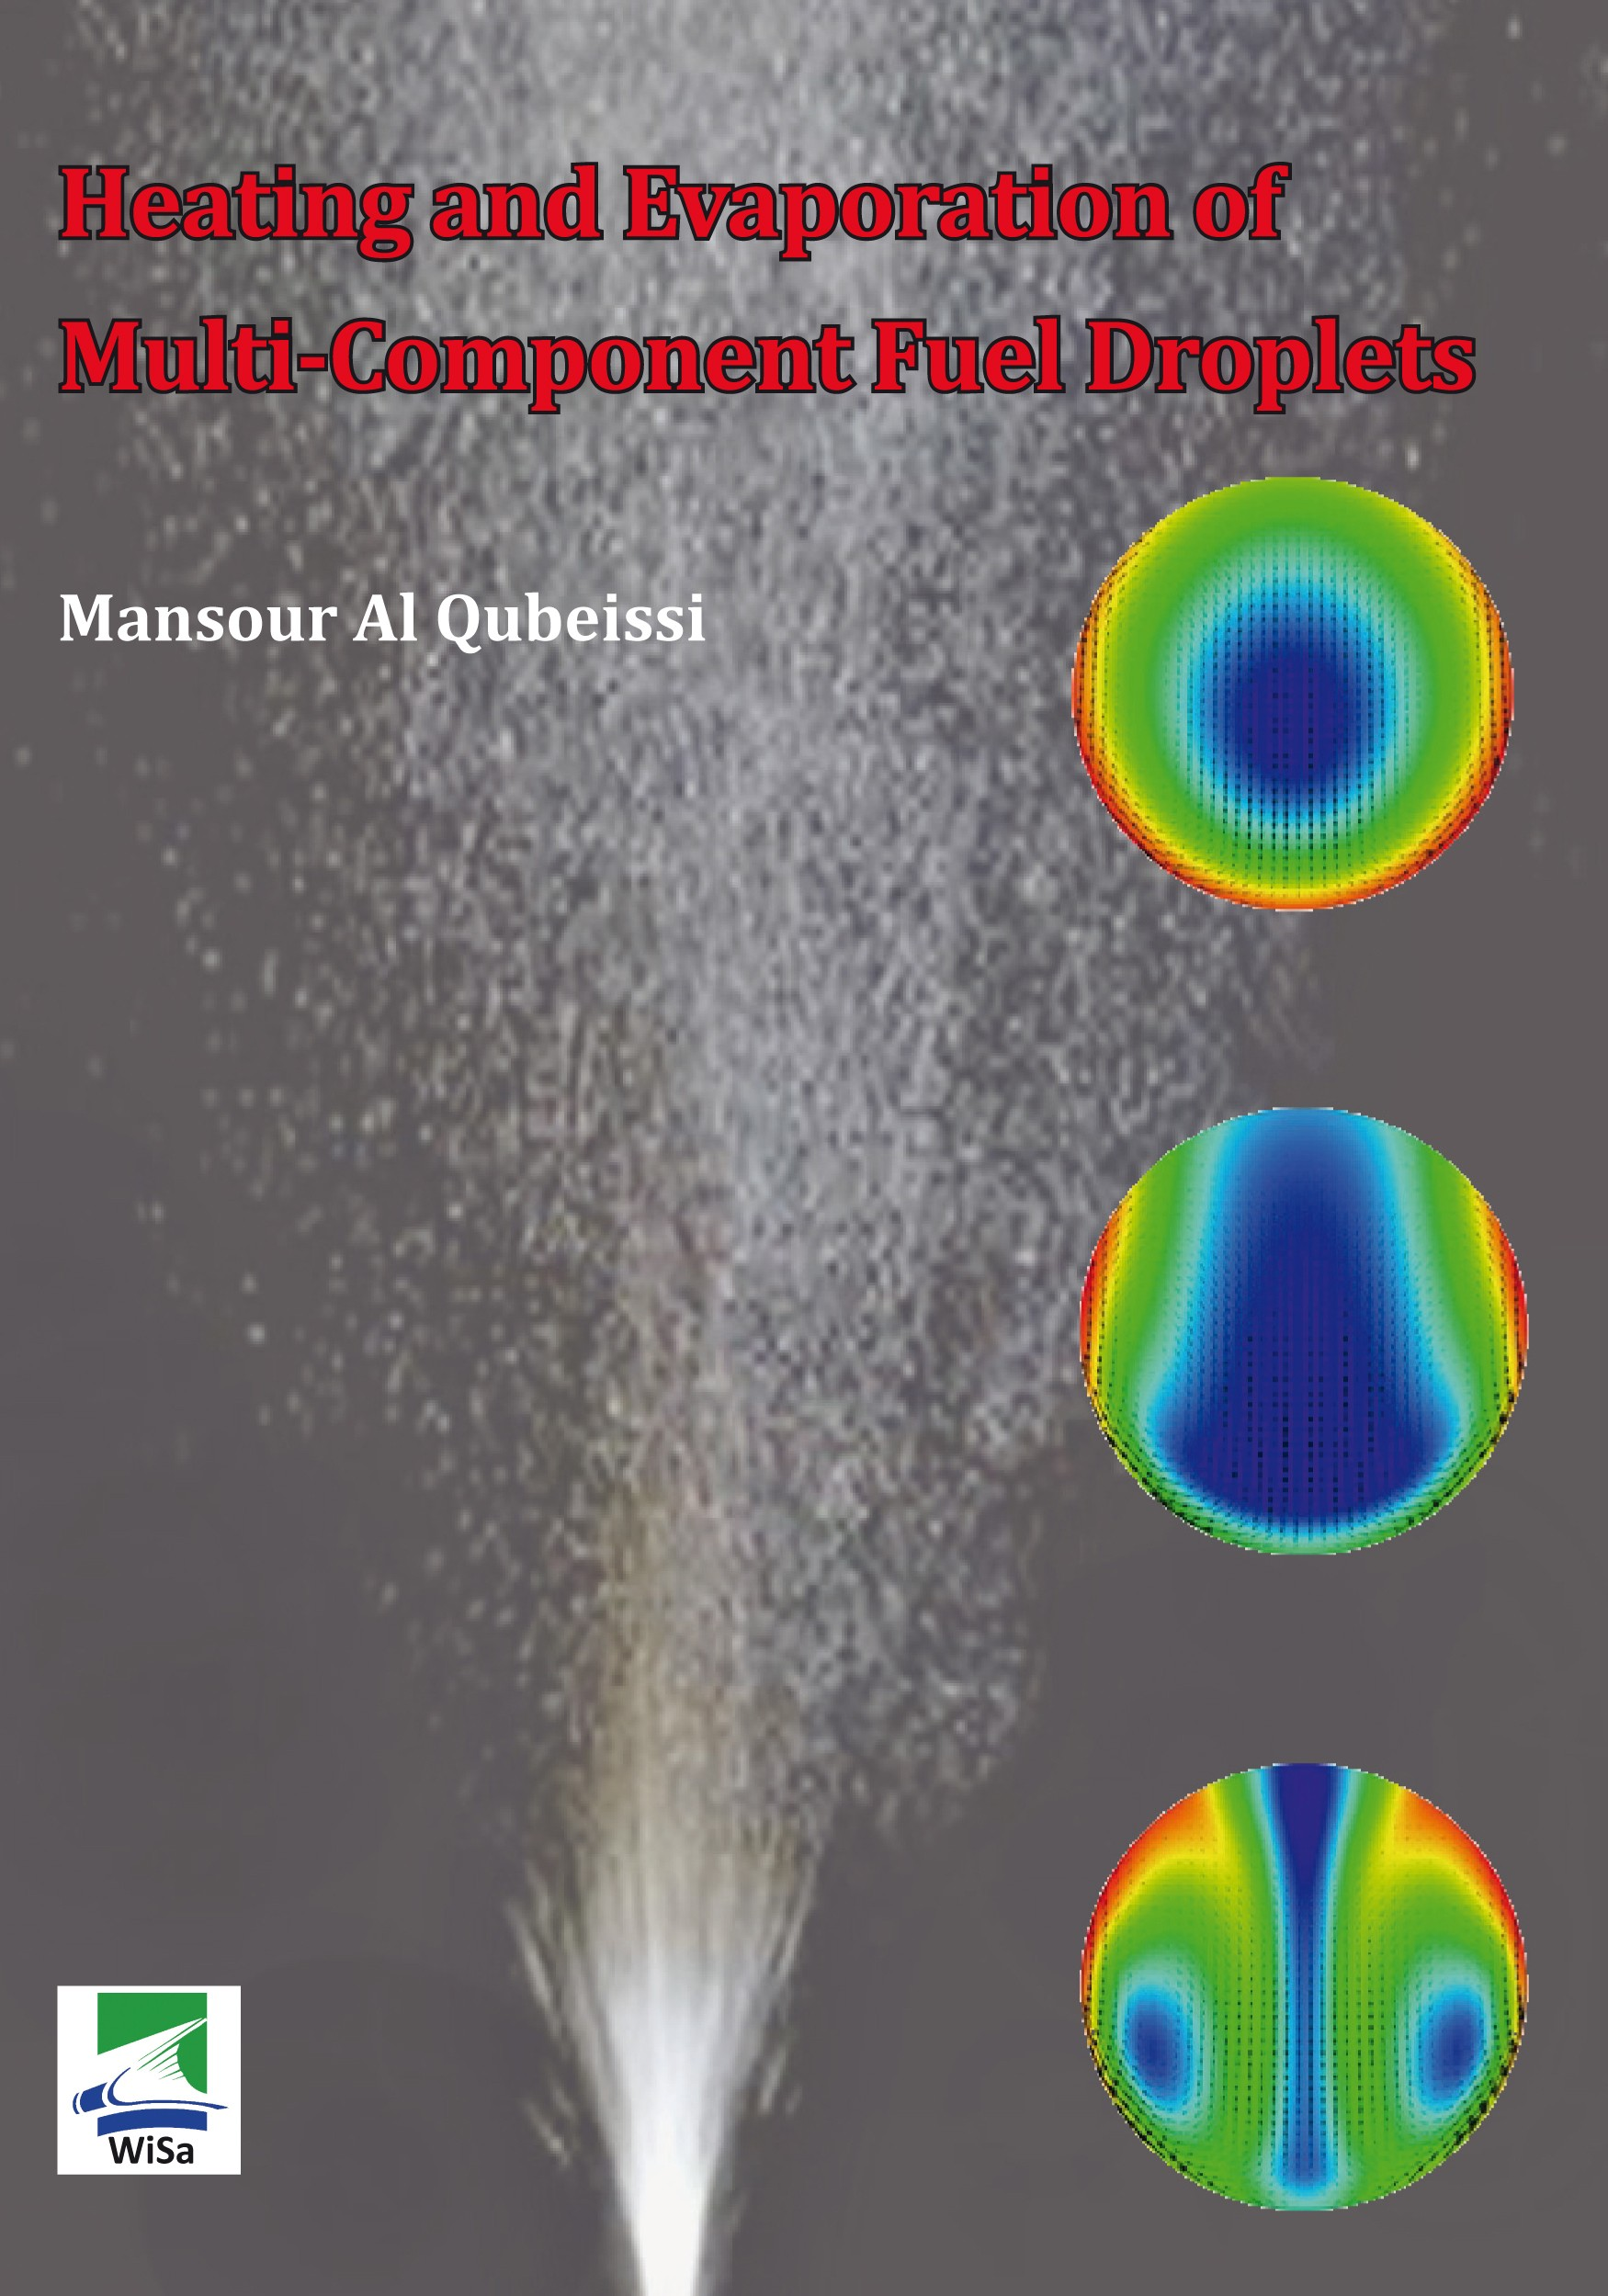 Heating and Evaporation of Multi-Component Fuel Droplets.